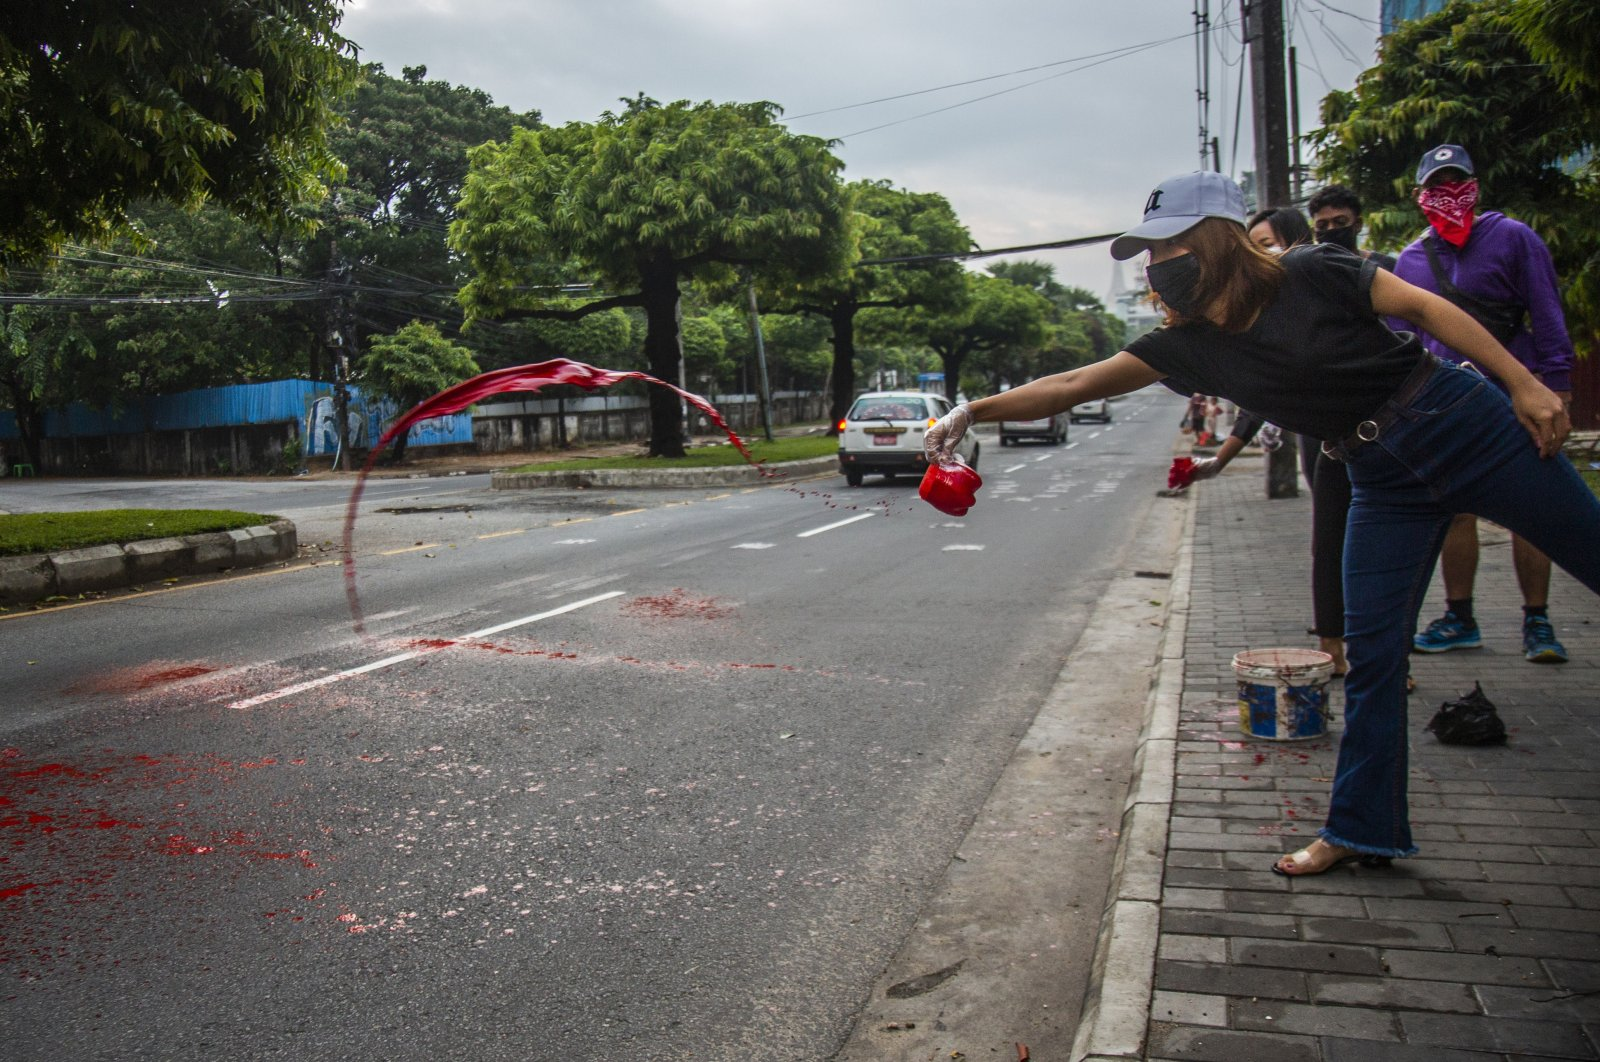 Anti-coup protesters throw red paint on a street during a demonstration in Yangon, Myanmar, April 6, 2021. (AP Photo)